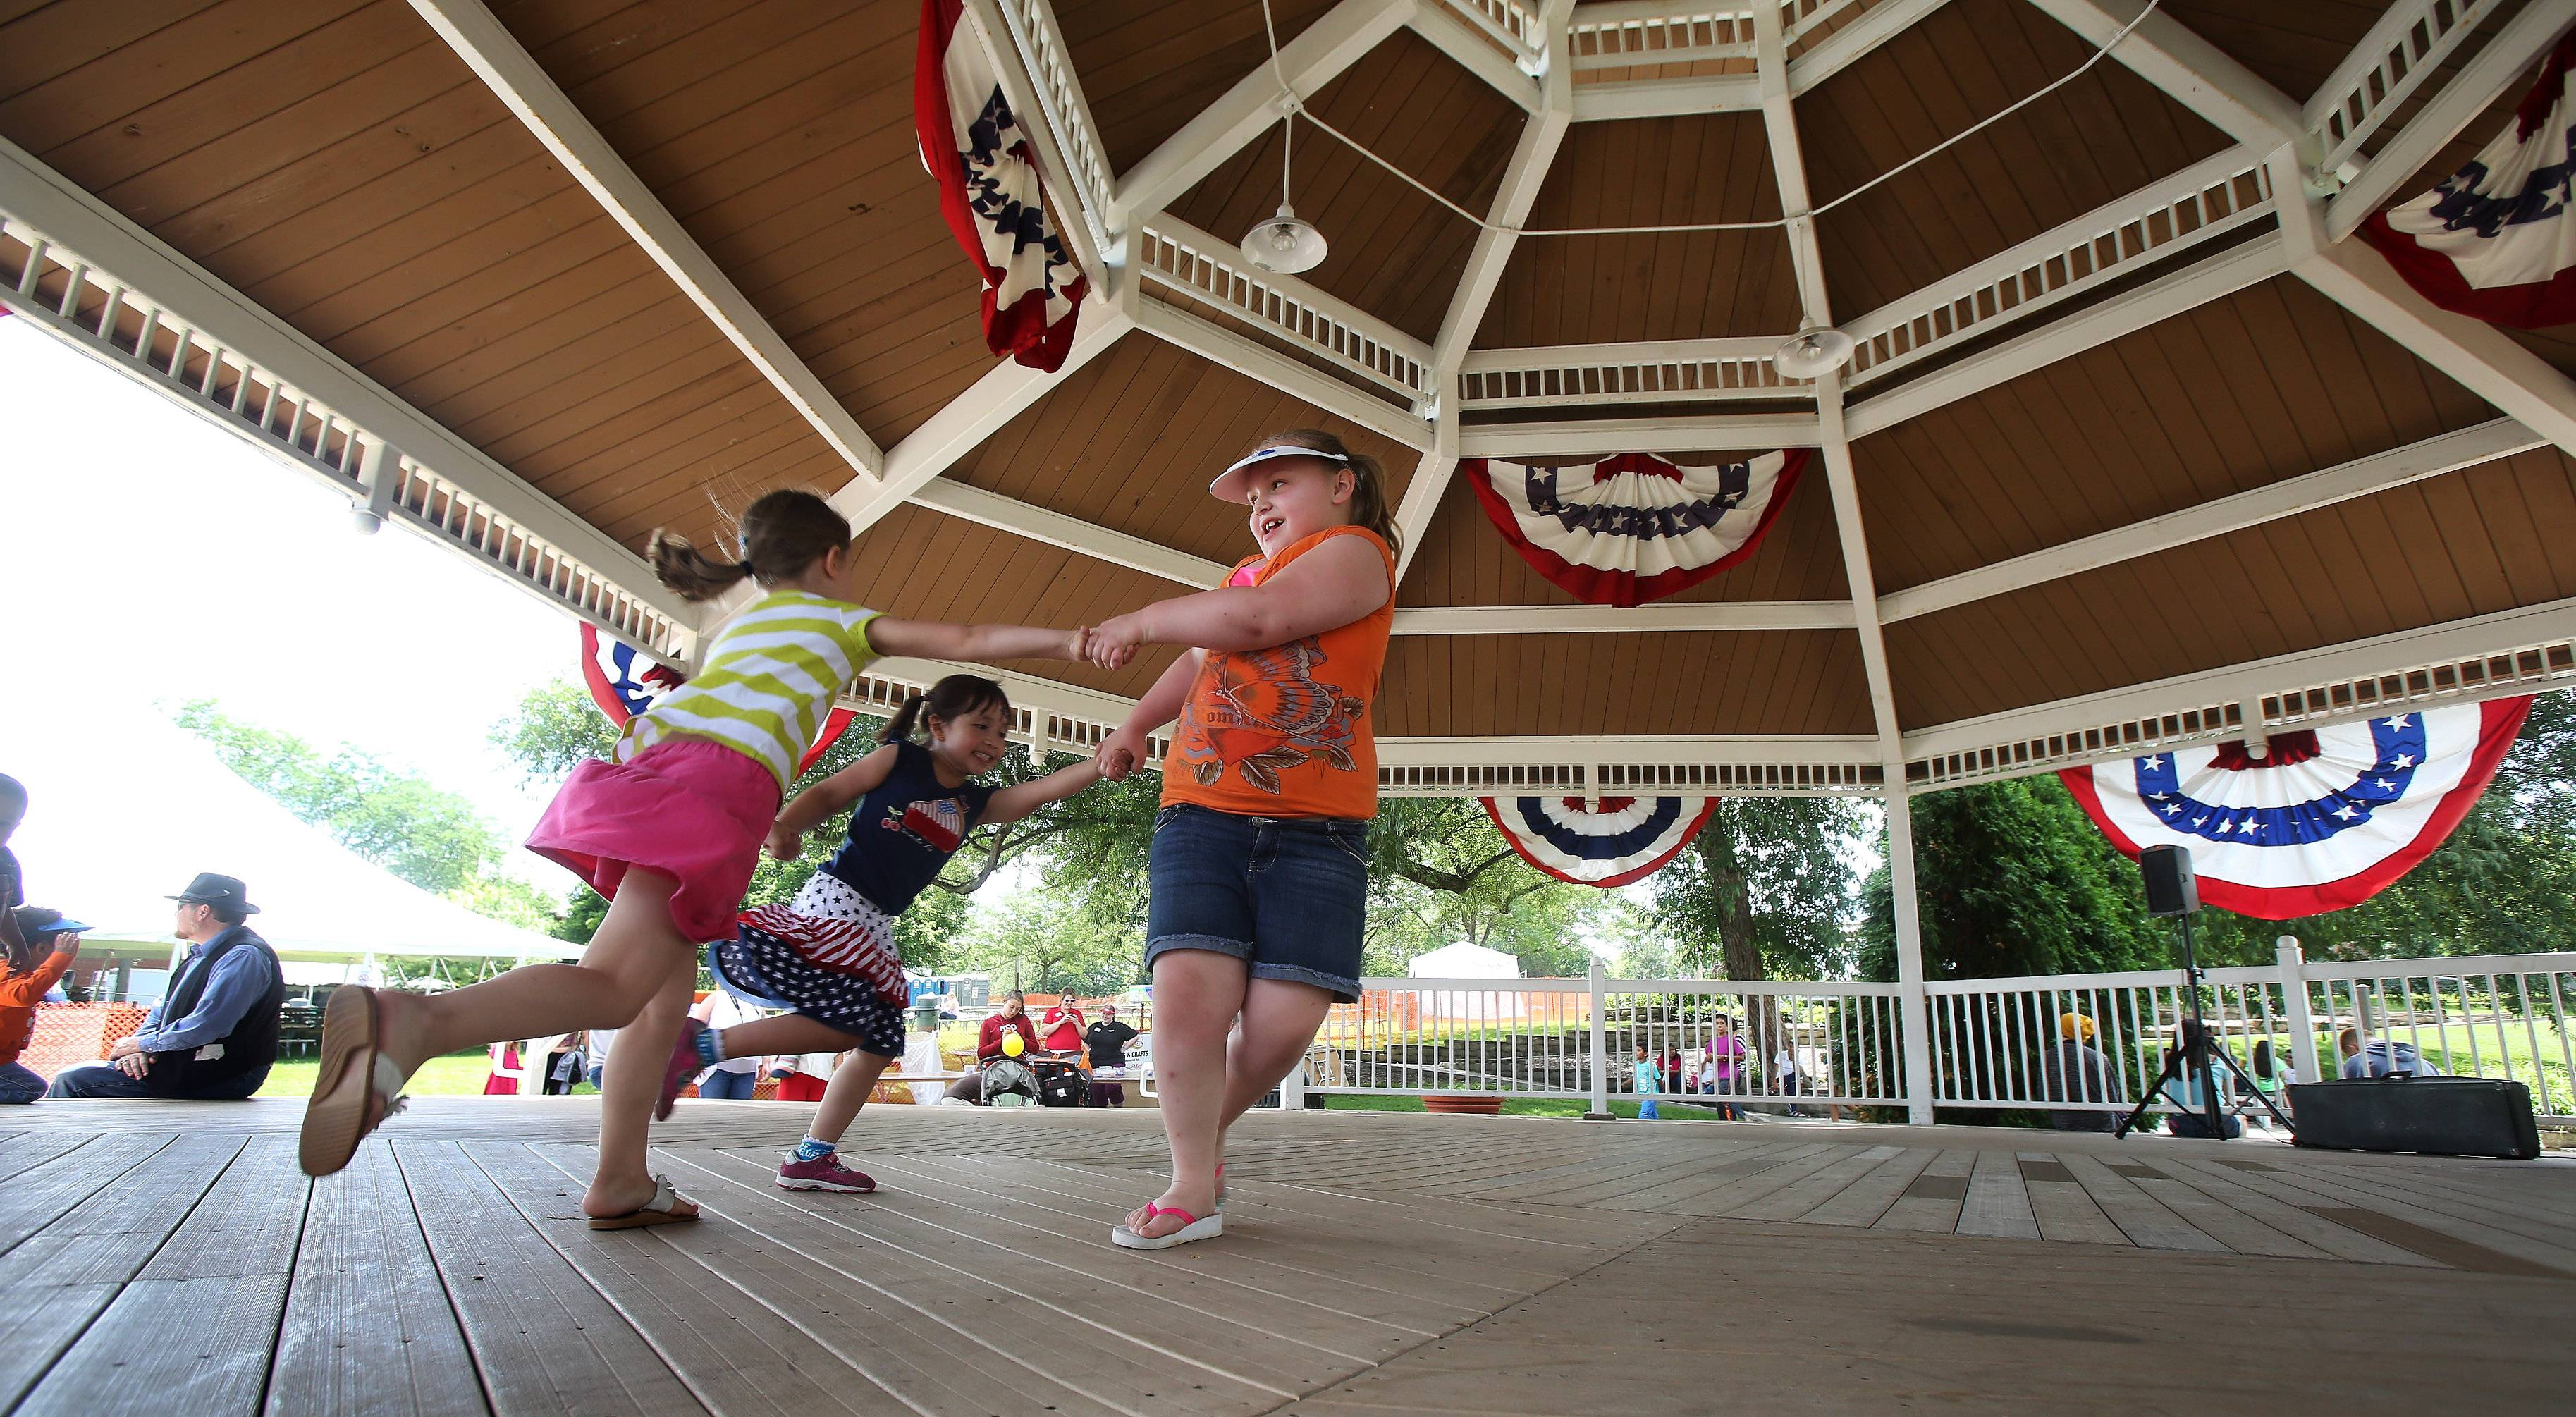 Ava Letendre, 4, left, Elisa Portilla-Dehn, 4, and Violet Caldwell, 8, dance on the stage of the gazebo Thursday during the first day of Mundelein Community Days at Kracklauer Park. The festival features music, food tents, games, and carnival rides.